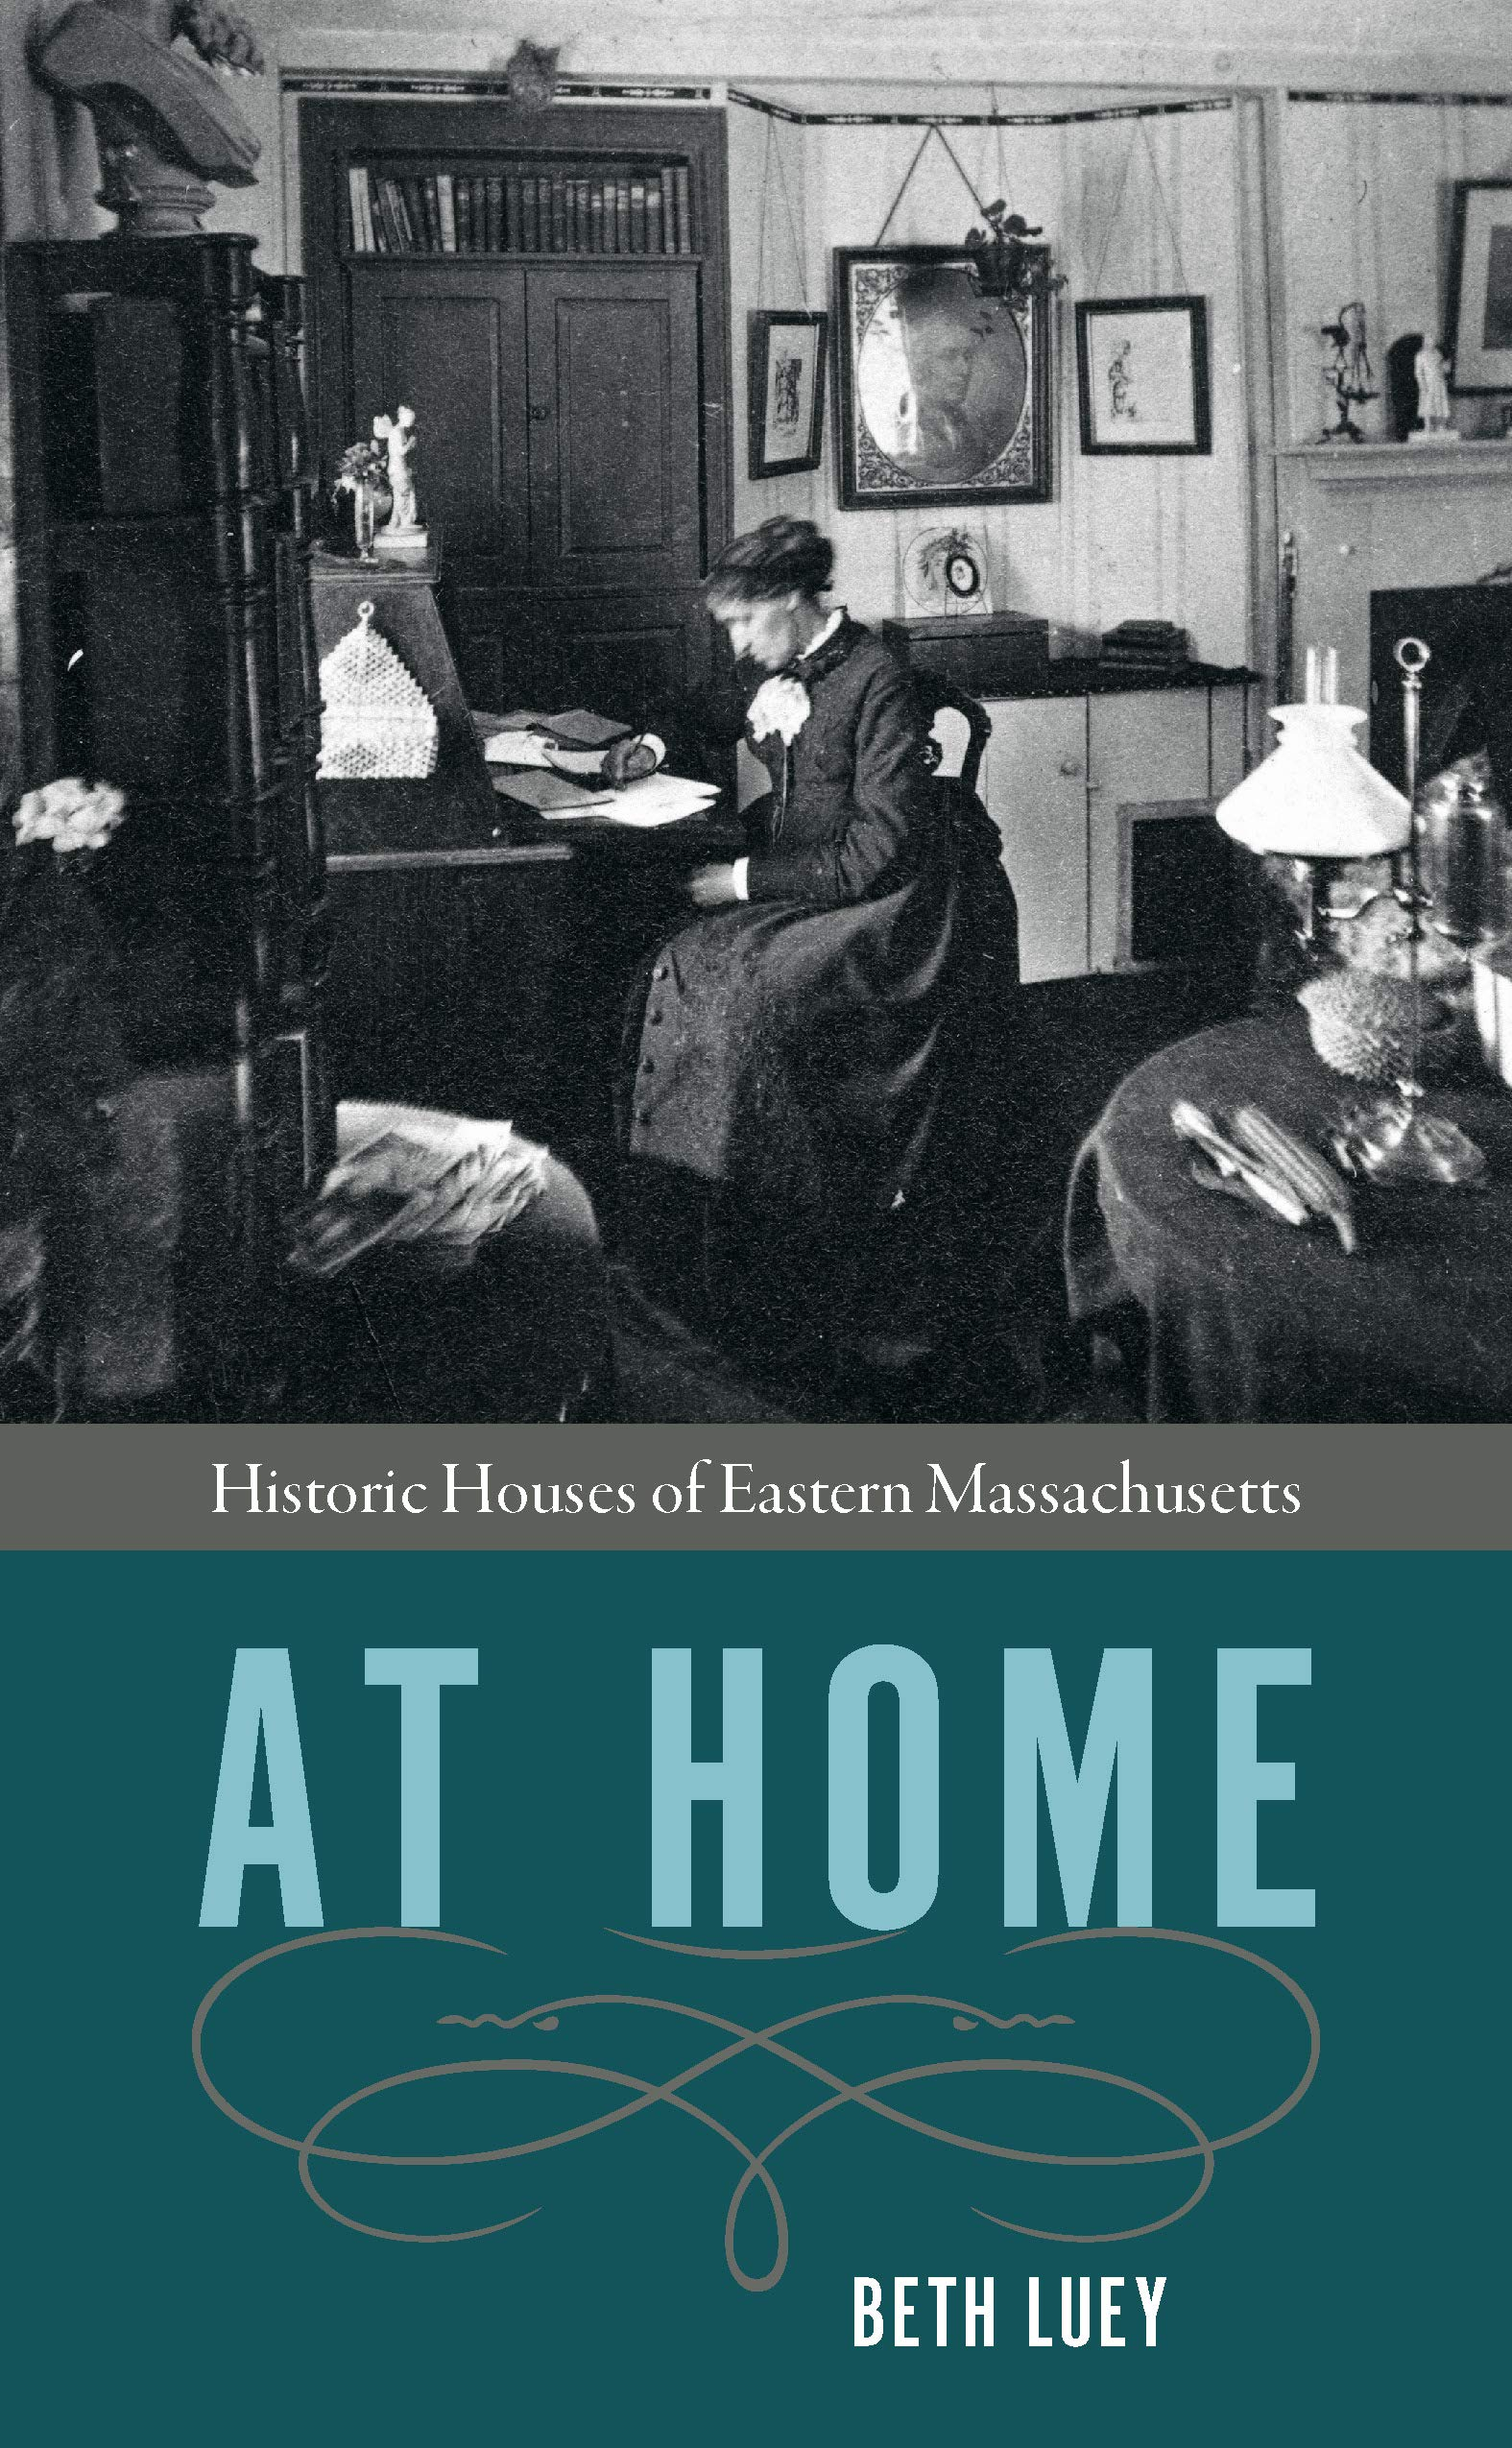 At Home: Historic Houses of Eastern Massachusetts: Beth Luey ...